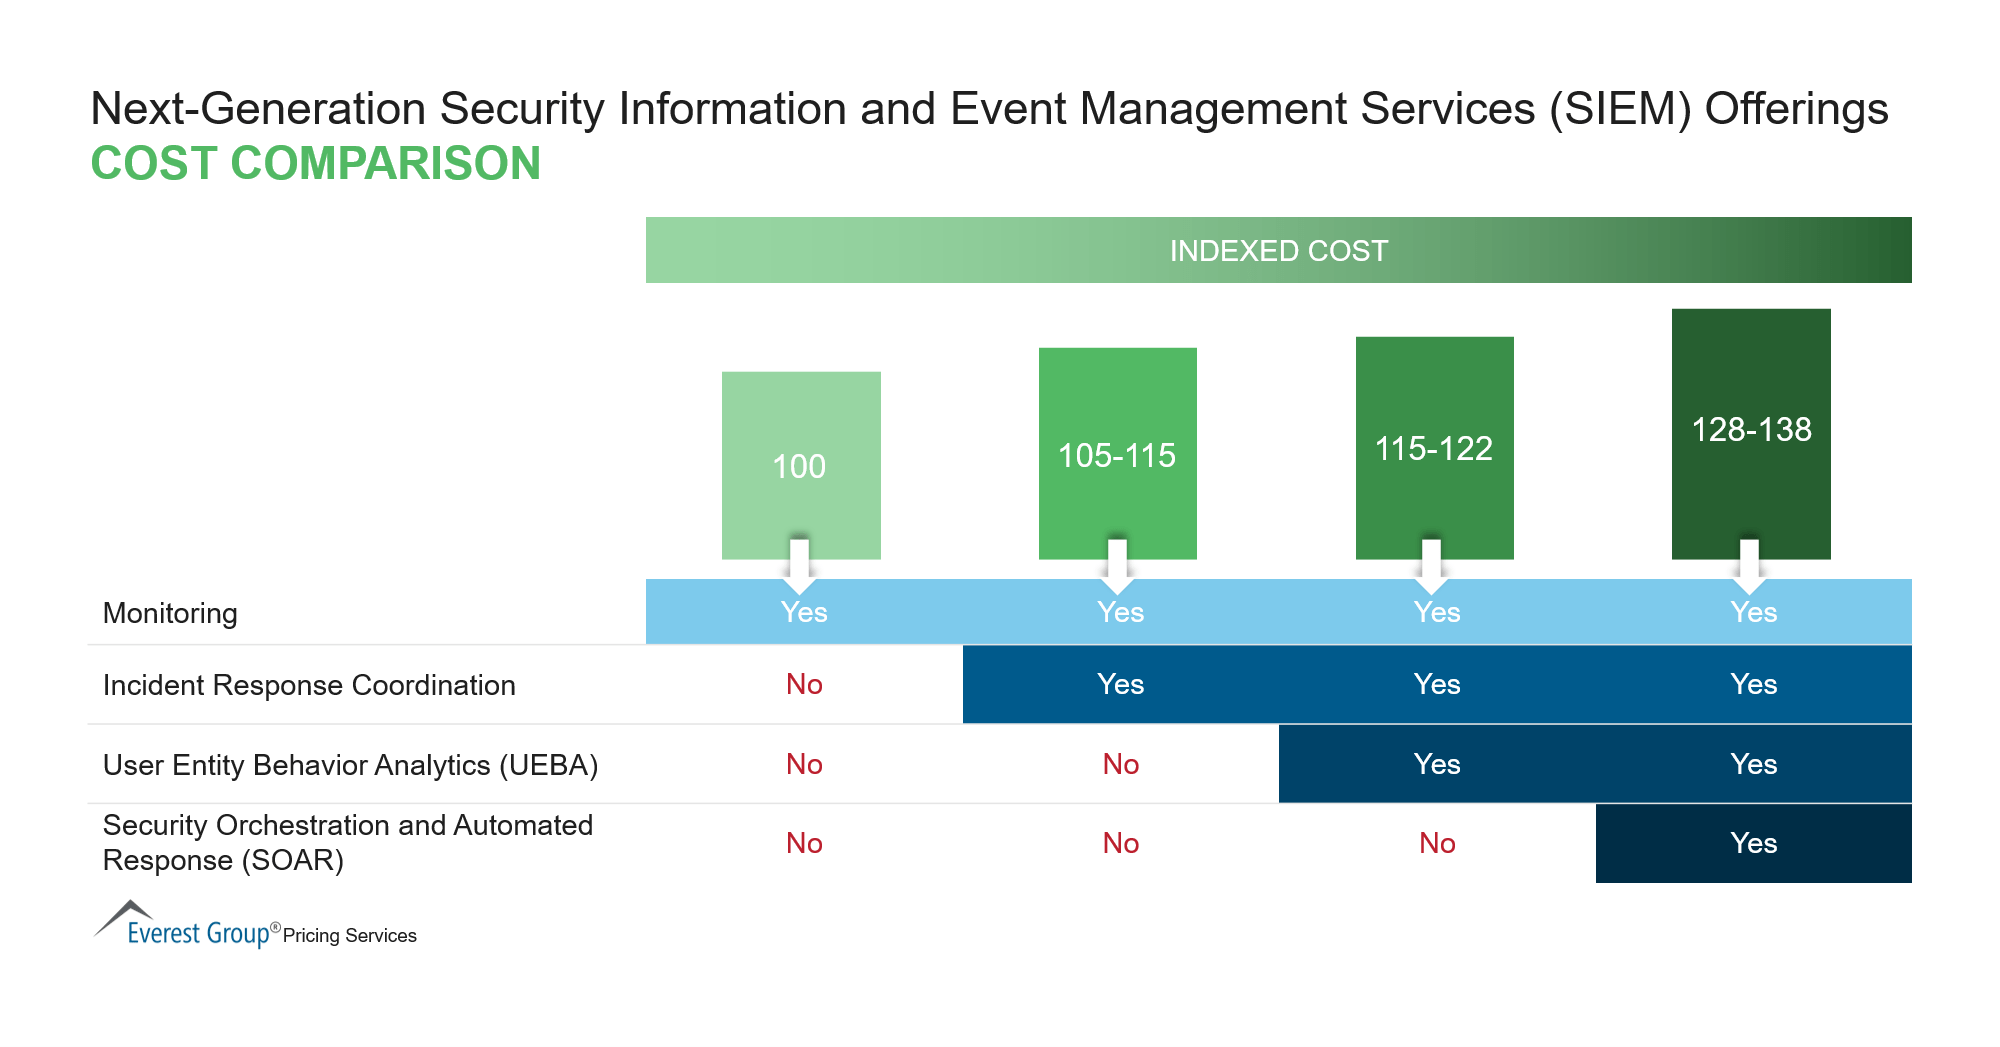 Next-Generation Security Information and Event Management Services Offerings Cost Comparison